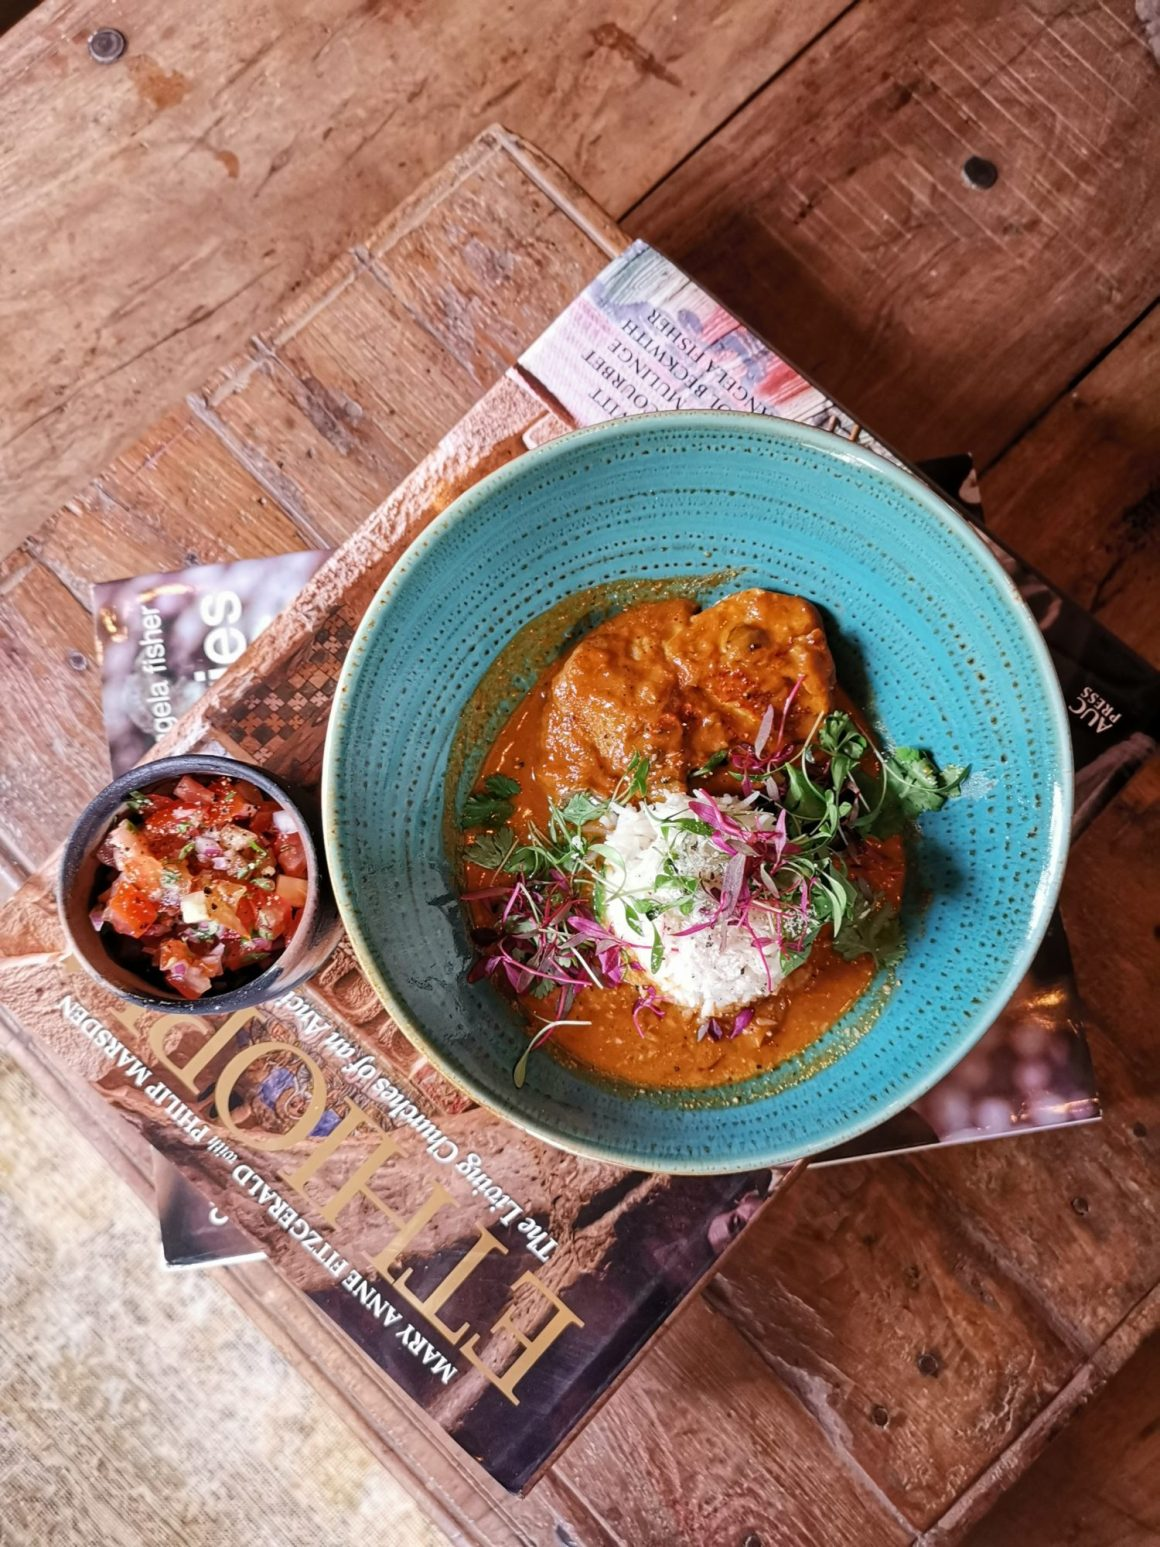 Kafe Utu, First Afro Cafe & Lounge In Singapore - Swahli Fish Curry ($29)